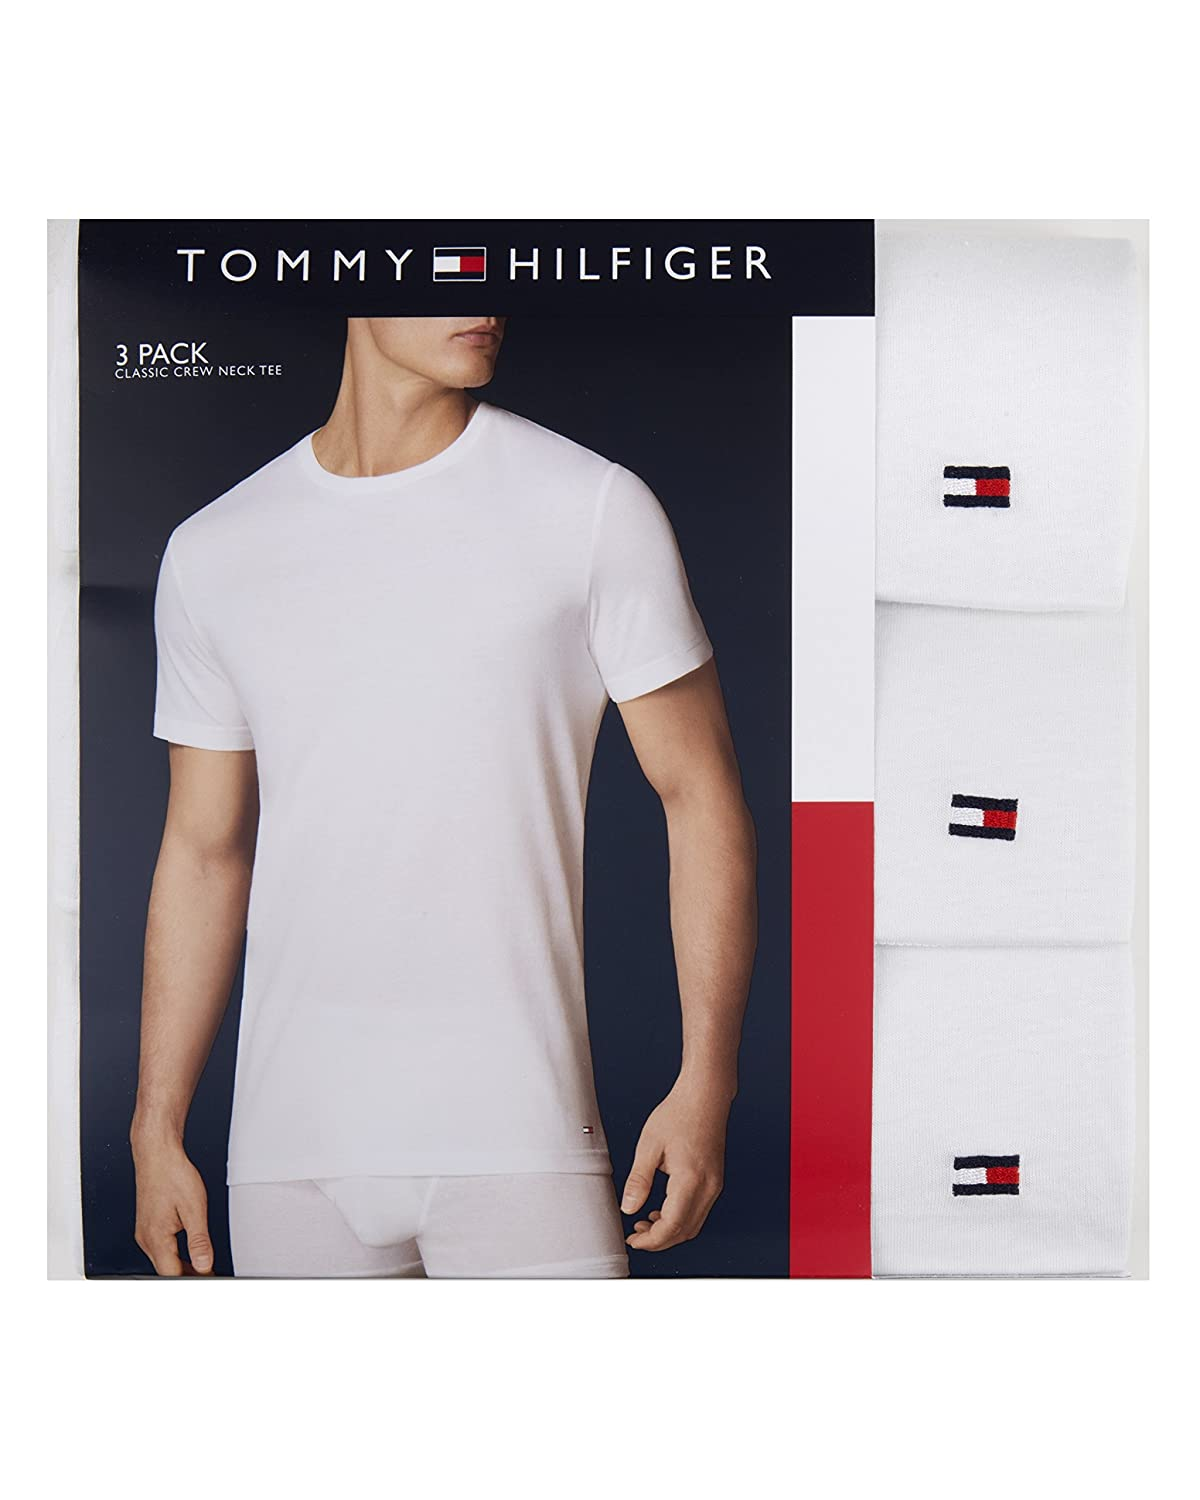 New Arrival Fashion Tommy Hilfiger Crew Neck Tee - 3 Pack Visa Payment For Sale Visit EiyHmoVuU